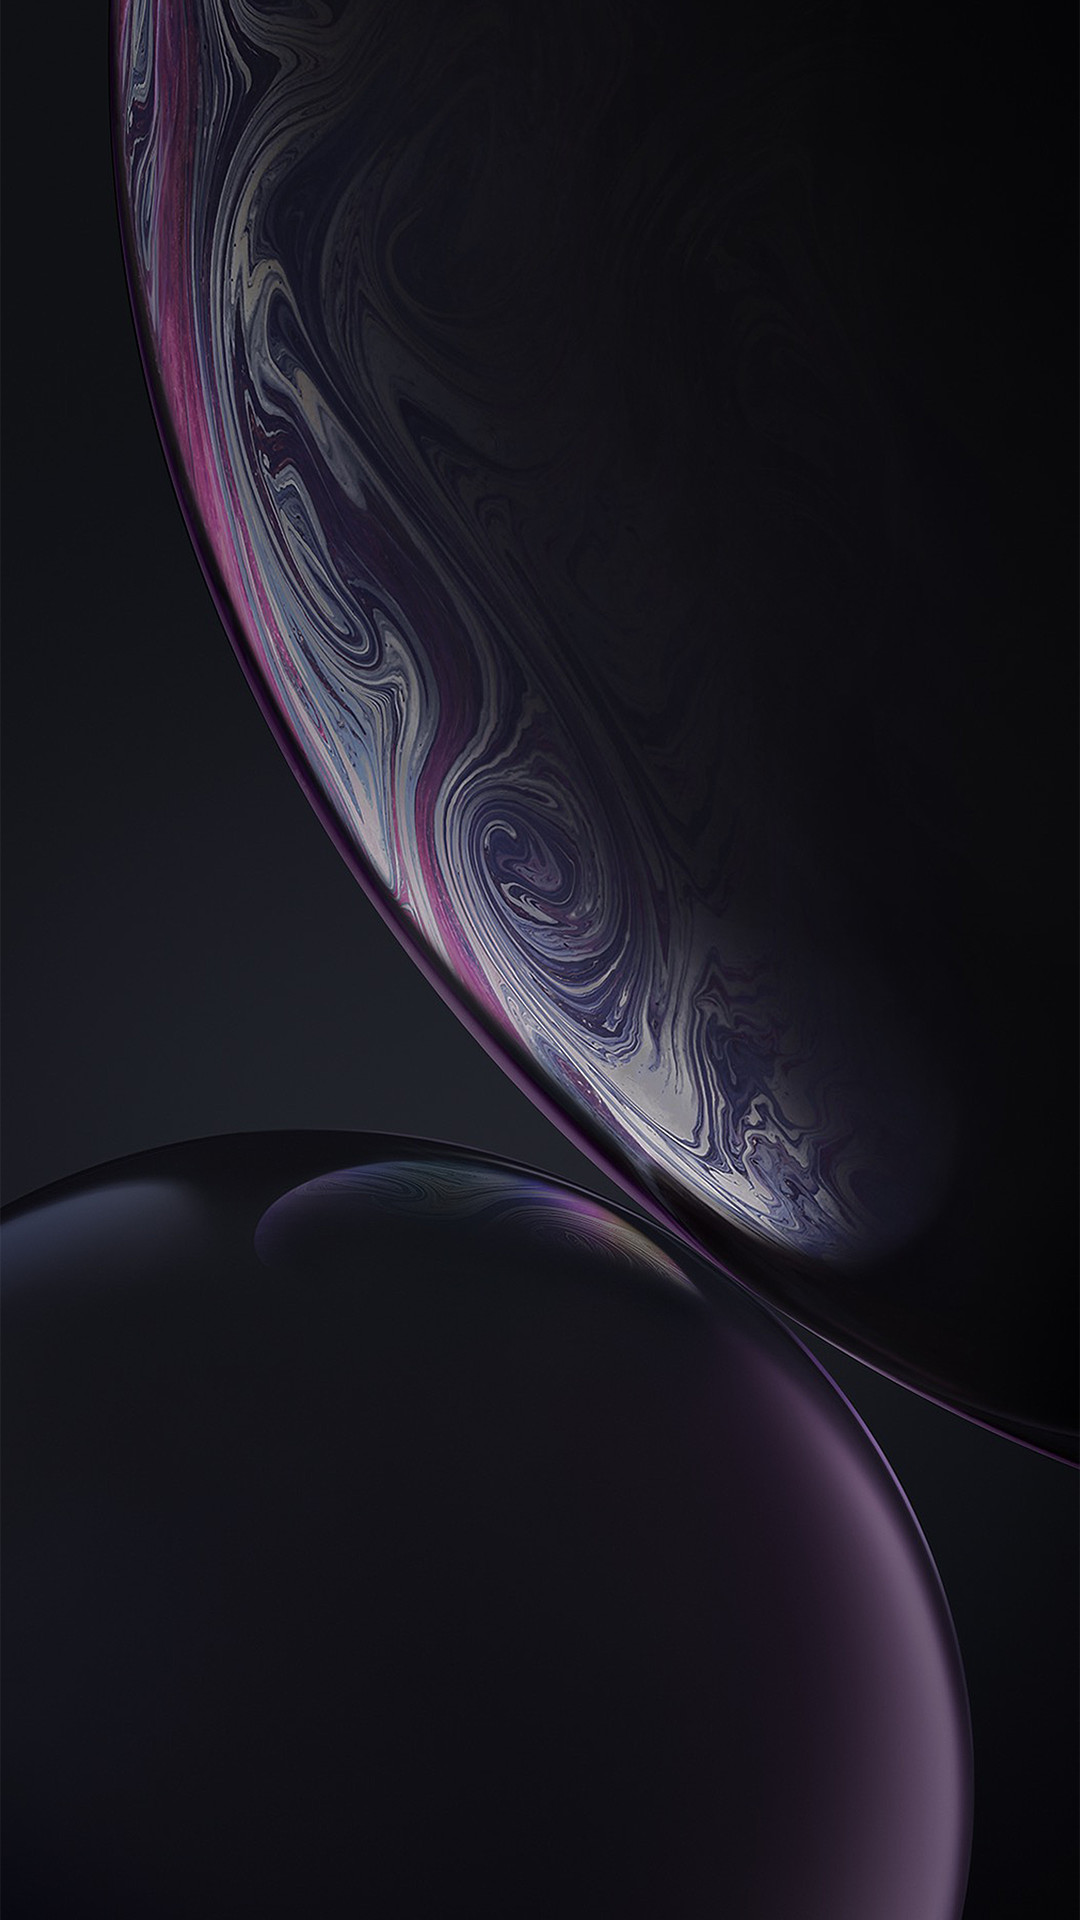 1080x1920 iPhone Xs Wallpapers (Live)